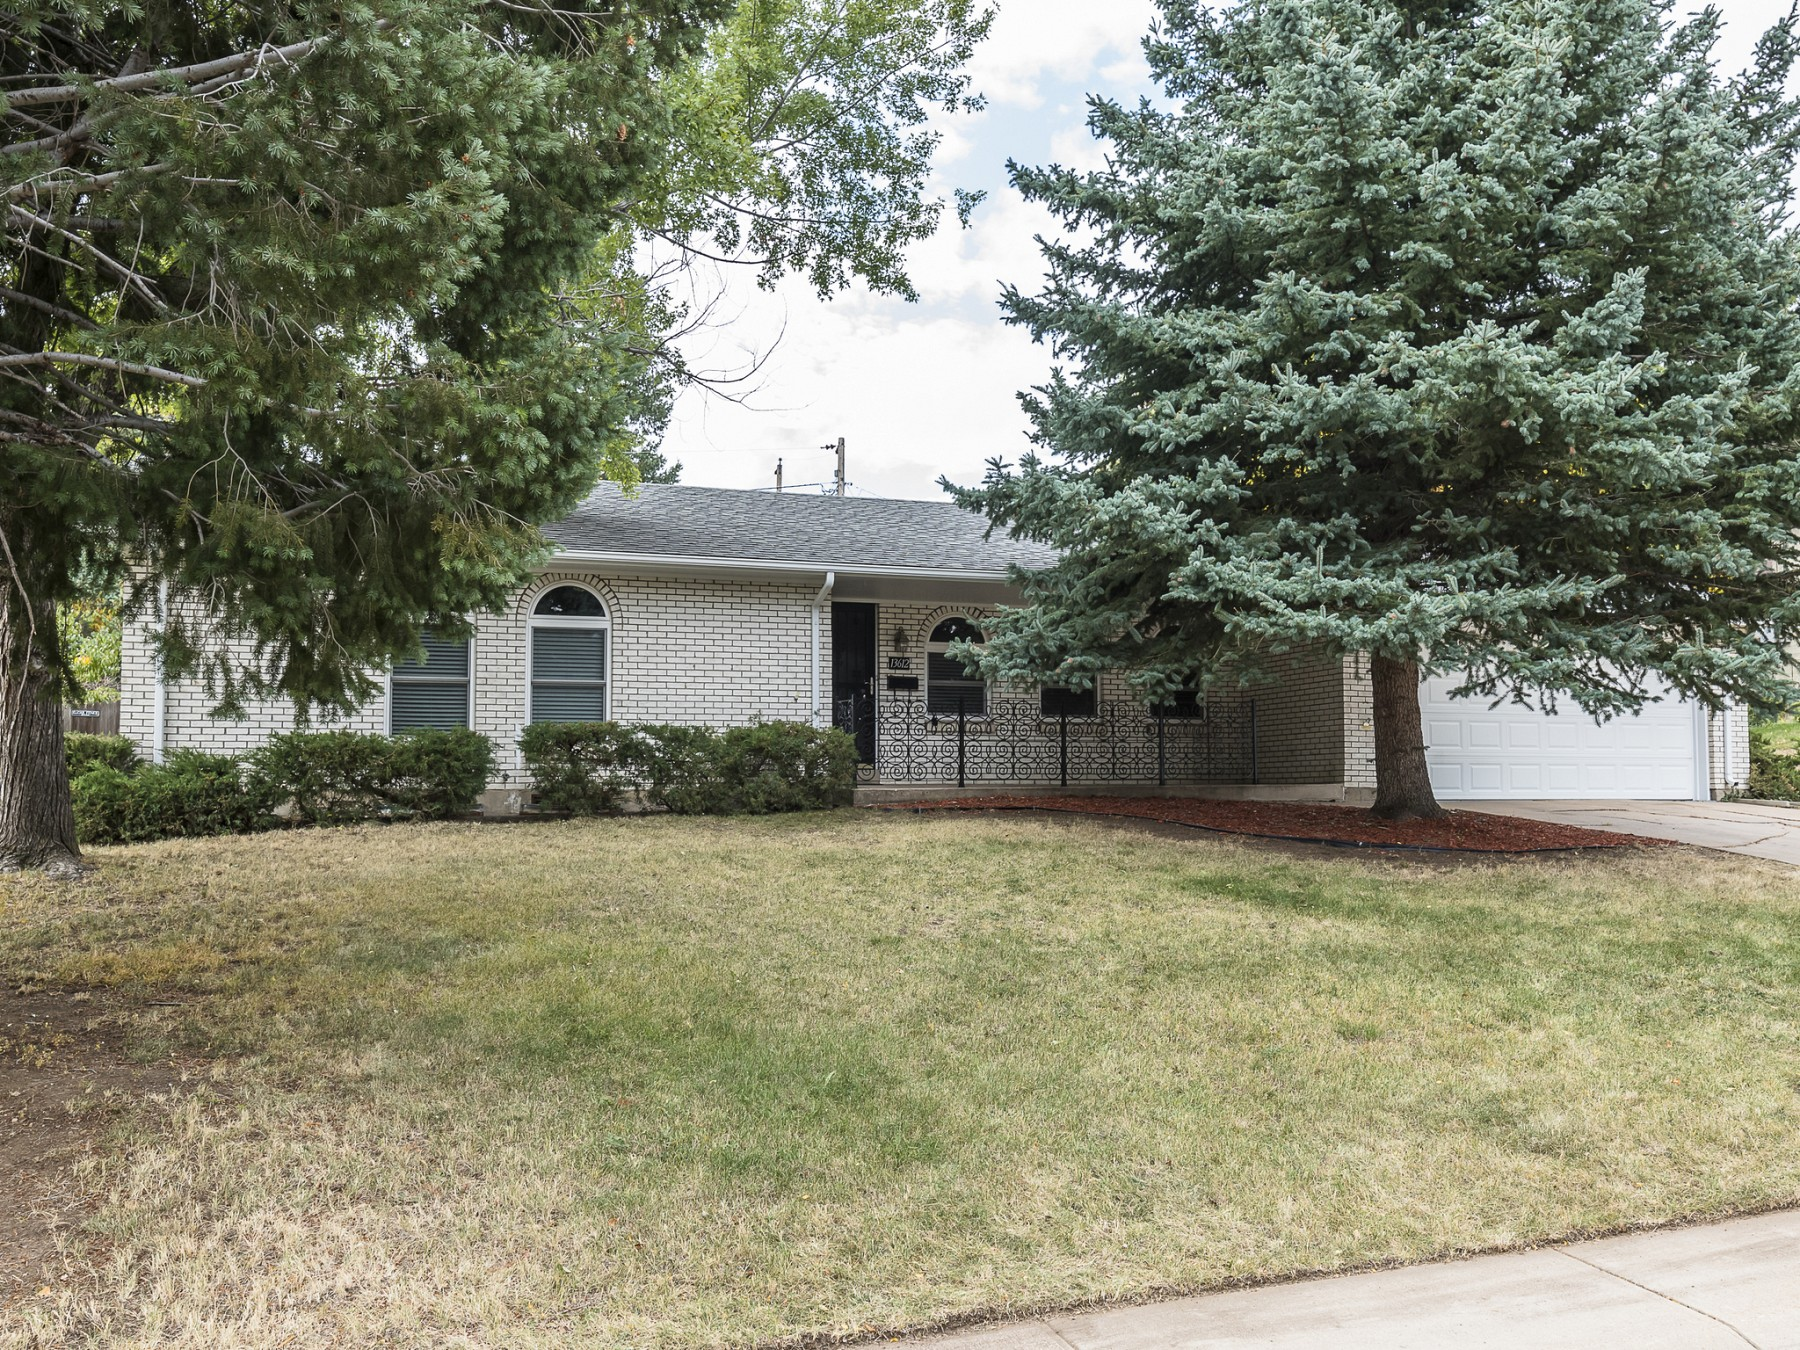 13612 W Alaska Pl, Lakewood, CO 80228